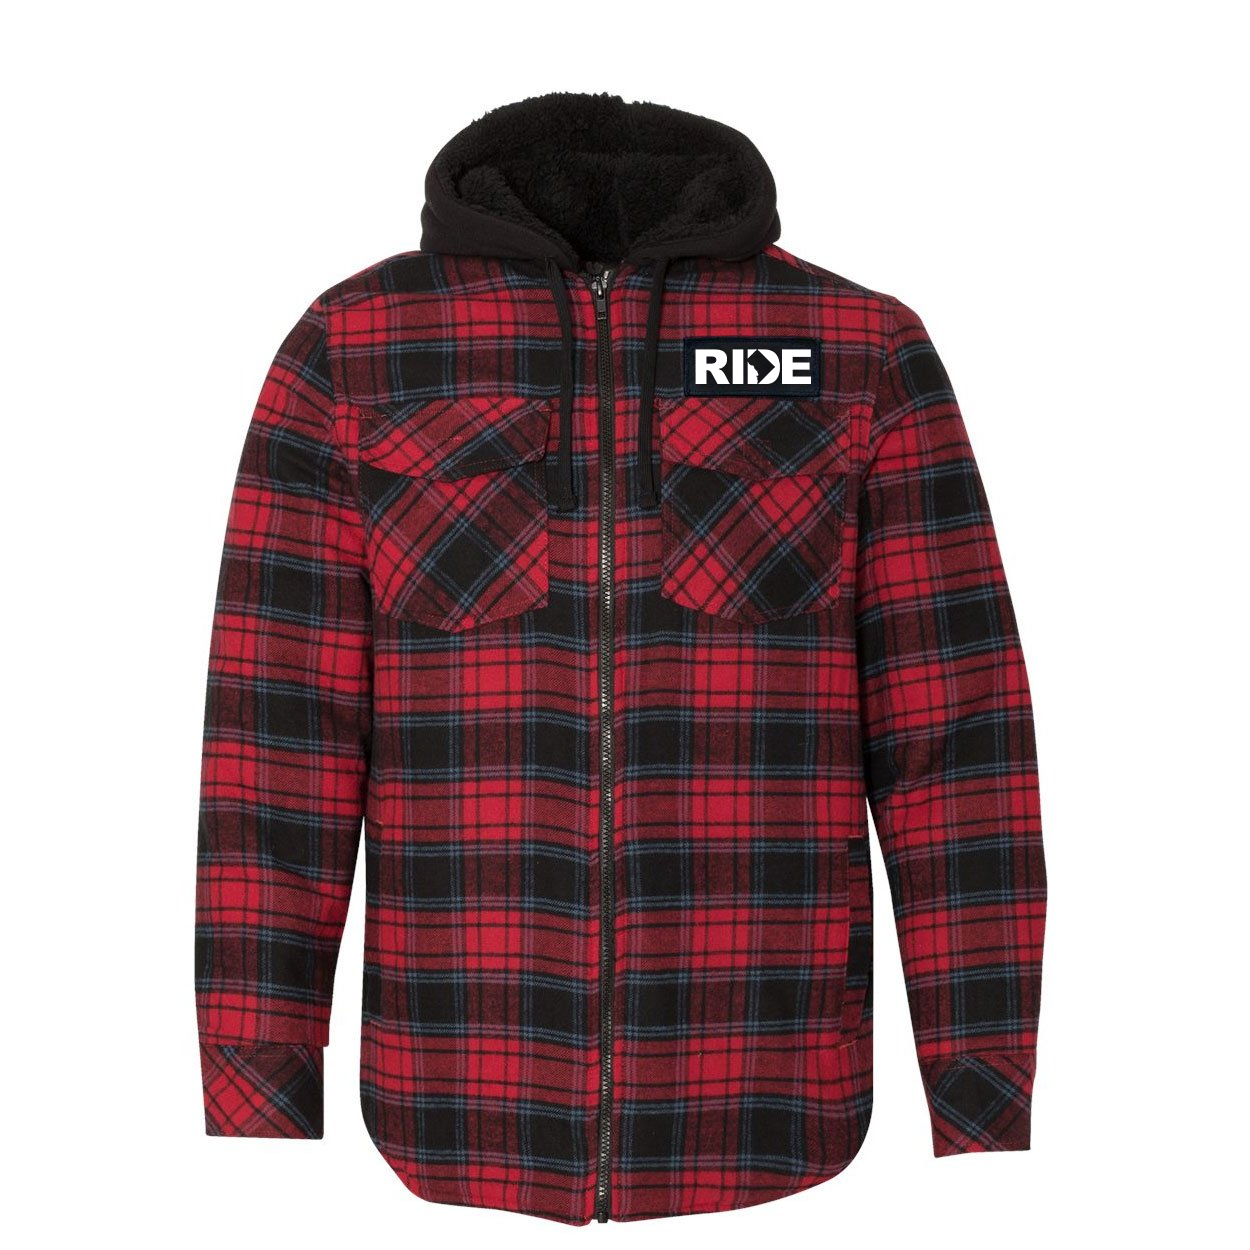 Ride District of Columbia Classic Unisex Full Zip Woven Patch Hooded Flannel Jacket Red/Black Buffalo (White Logo)